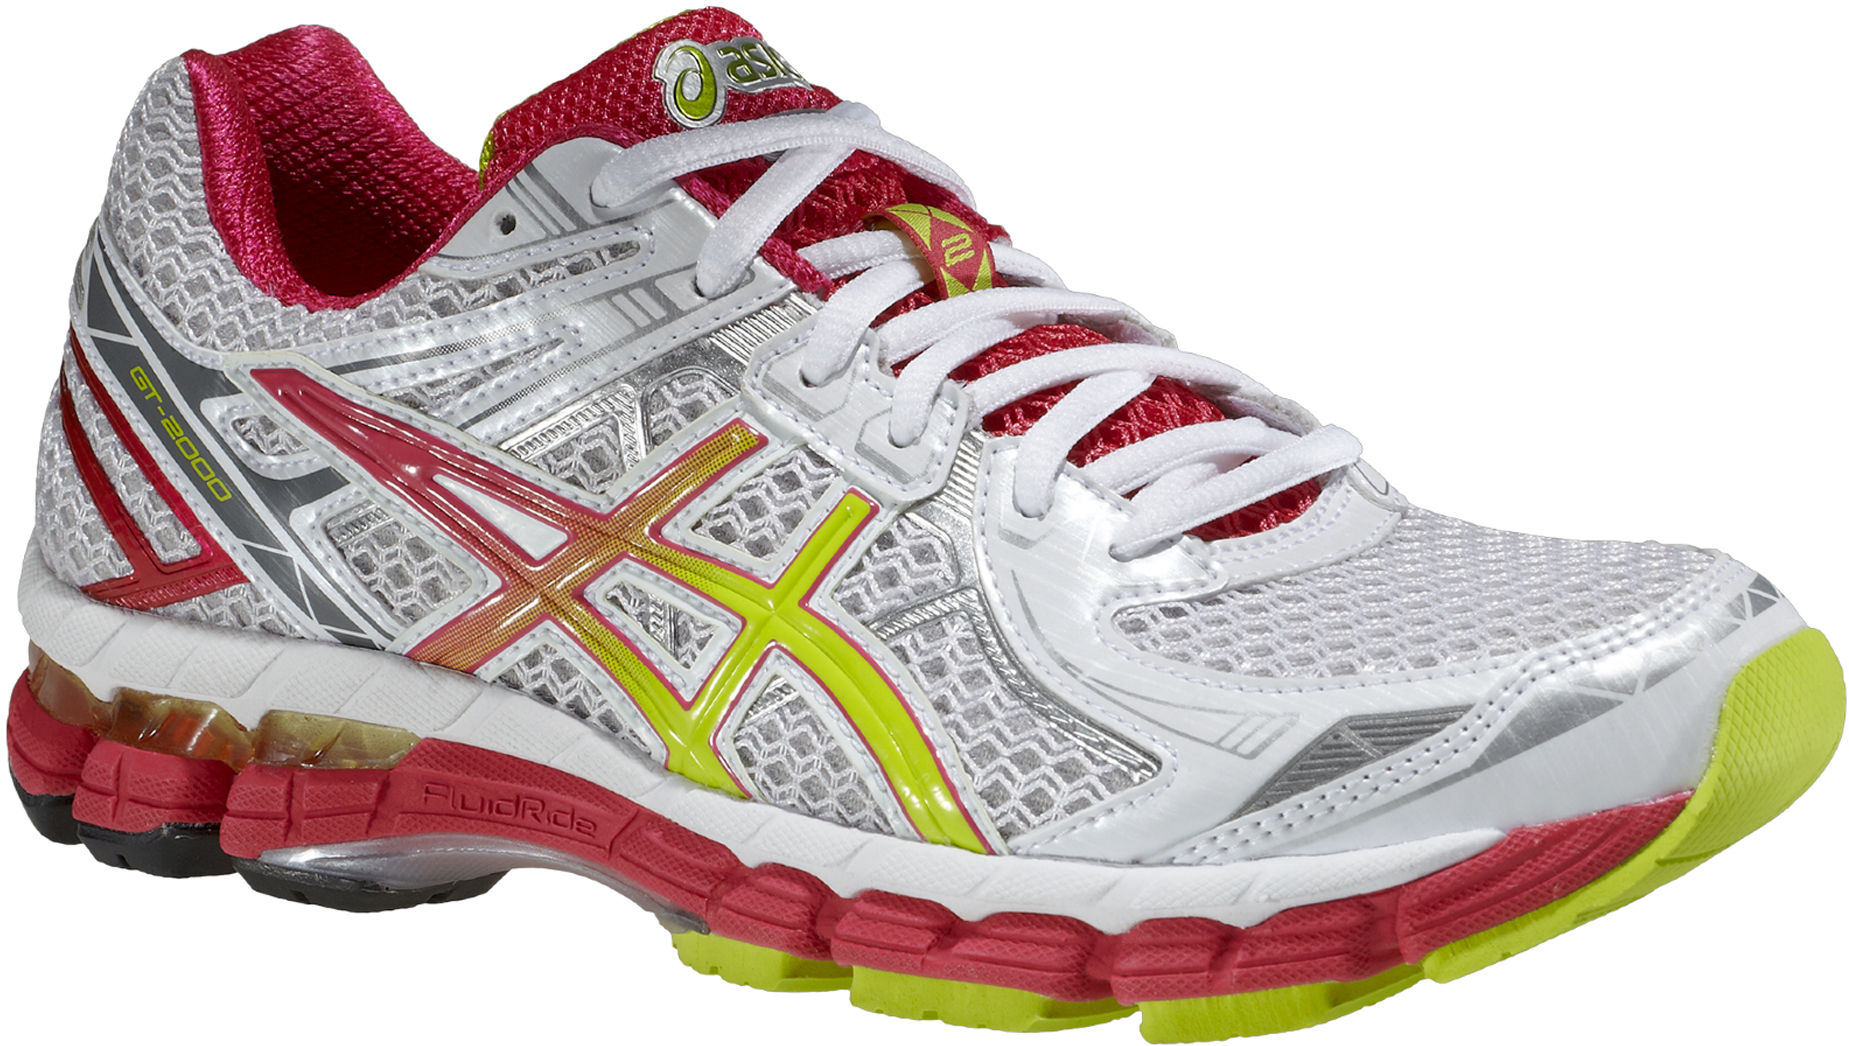 Asics GT-2000 2 - Dam - T3P8N-0105 - White / Lime /red (Höst/Vinter 2014)